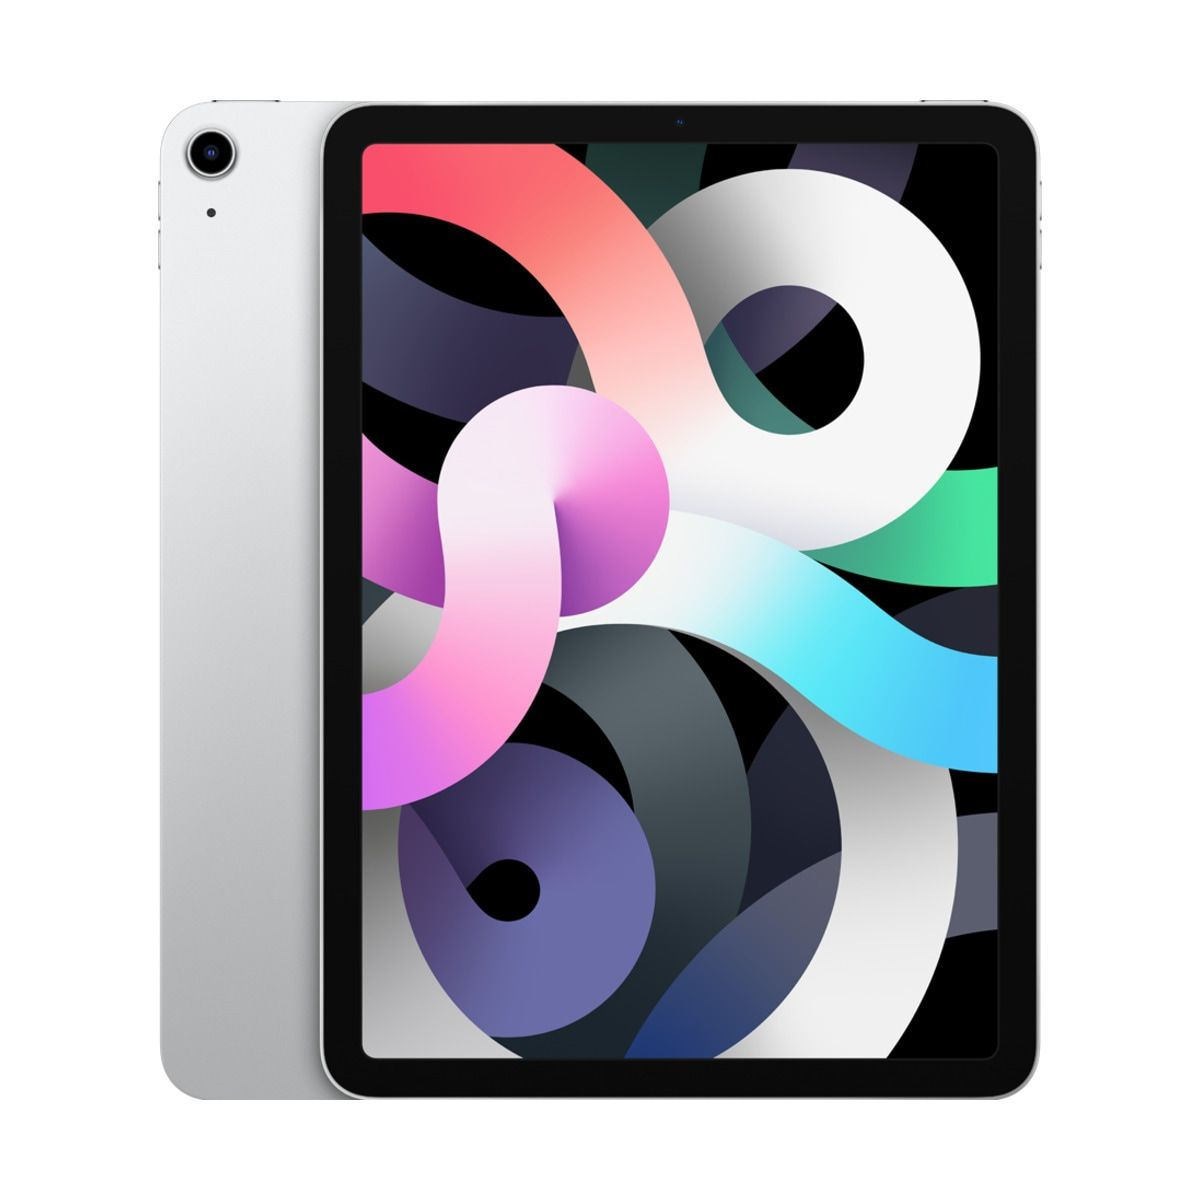 iPad Air Wi-Fi 64GB - Silver